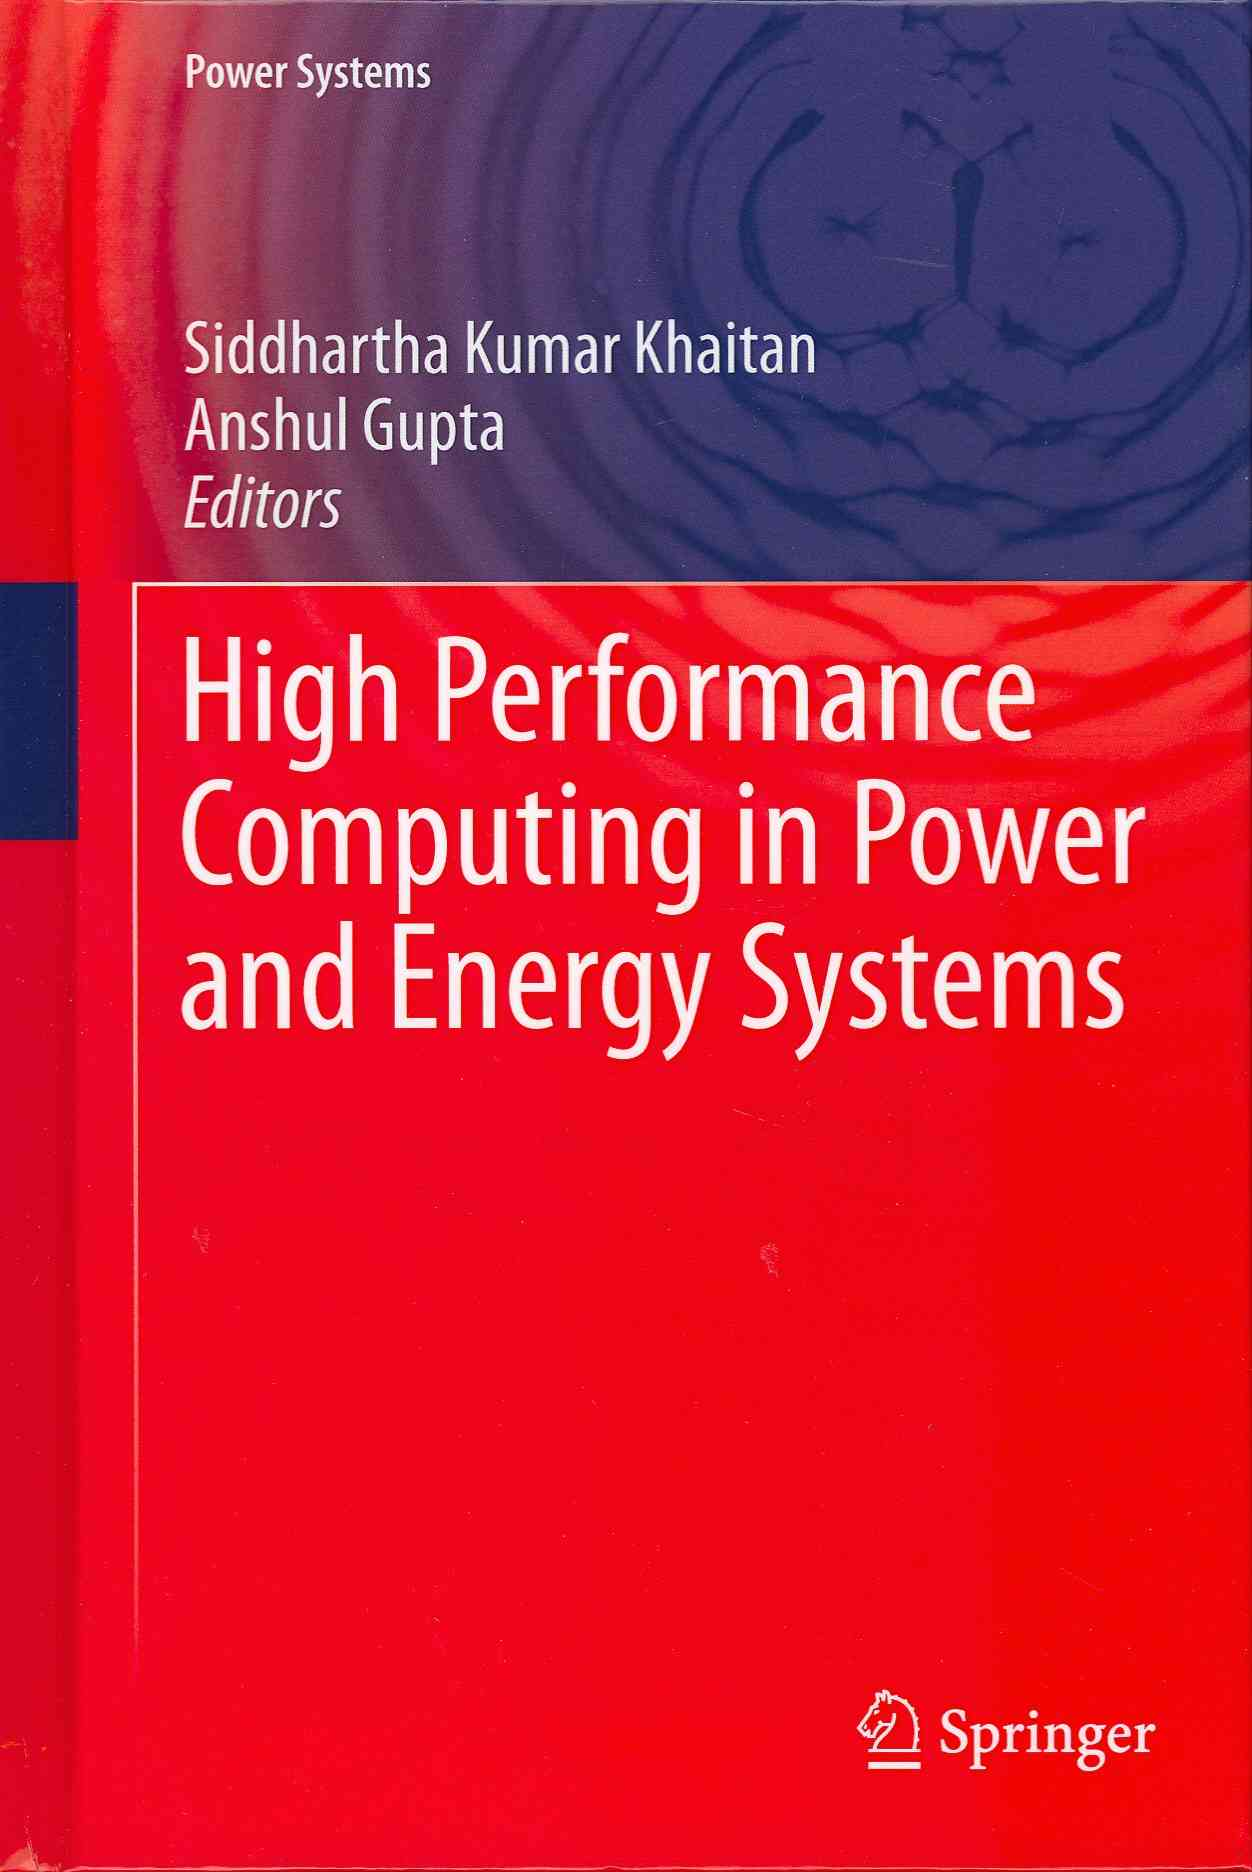 High Performance Computing in Power and Energy Systems By Khaitan, Siddhartha Kumar (EDT)/ Gupta, Anshul (EDT)